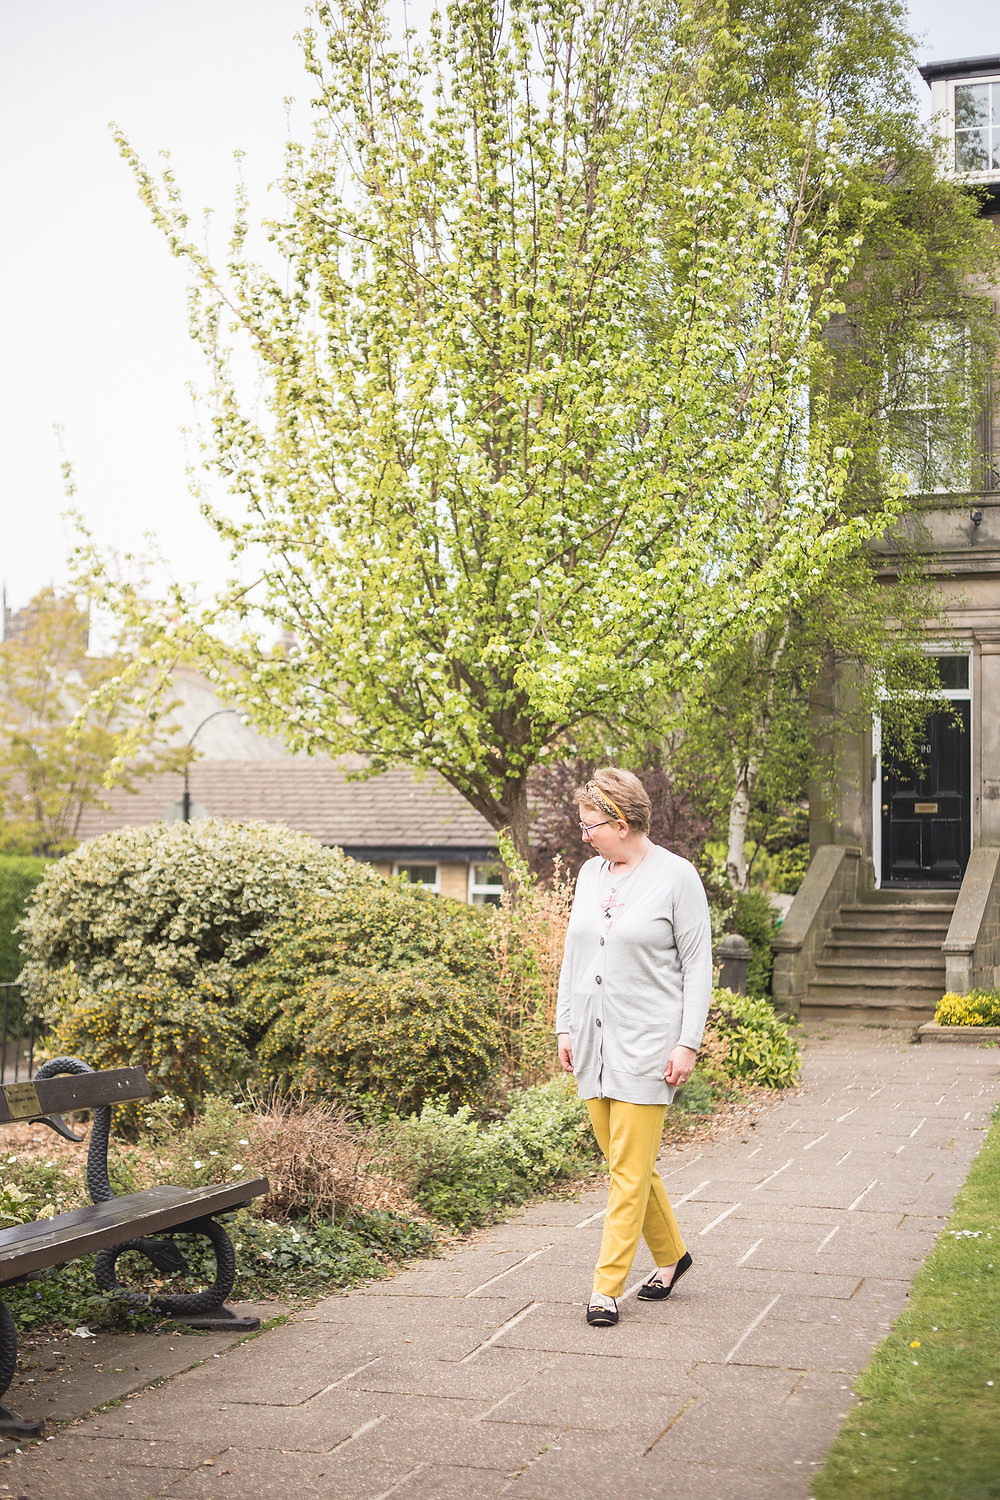 Sarah walking wearing yellow trousers and a grey cardigan over the top of a thin grey jumper she is wearing black shoes. You can see trees, bushes, plants and a front door to a flat. There is also a bench just in shot.